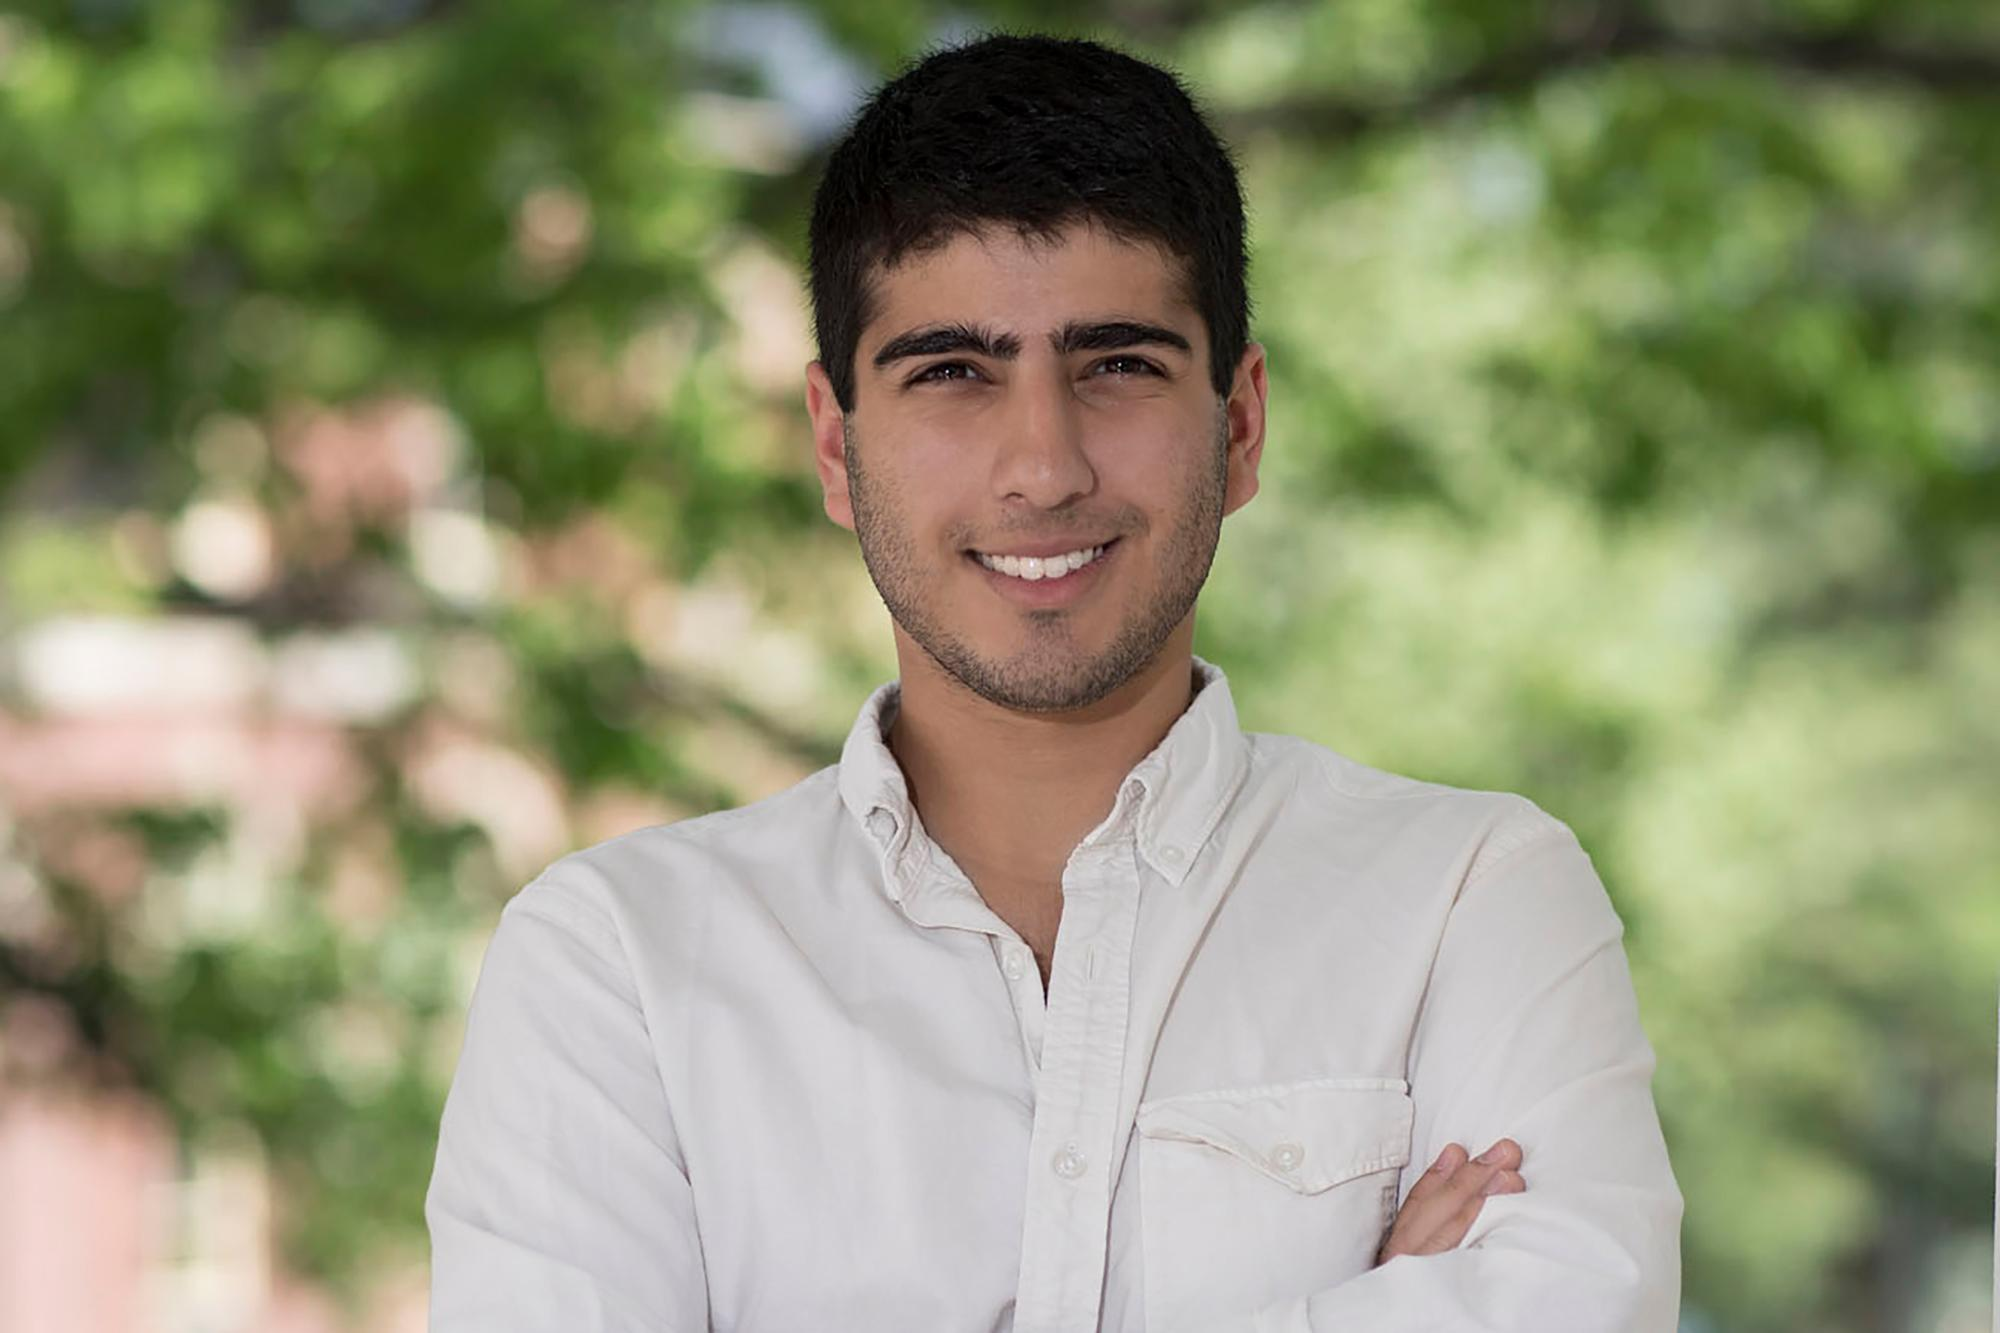 Daniel Naveed Tavakol will conduct research in Switzerland through a fellowship from the Whitaker International Program.